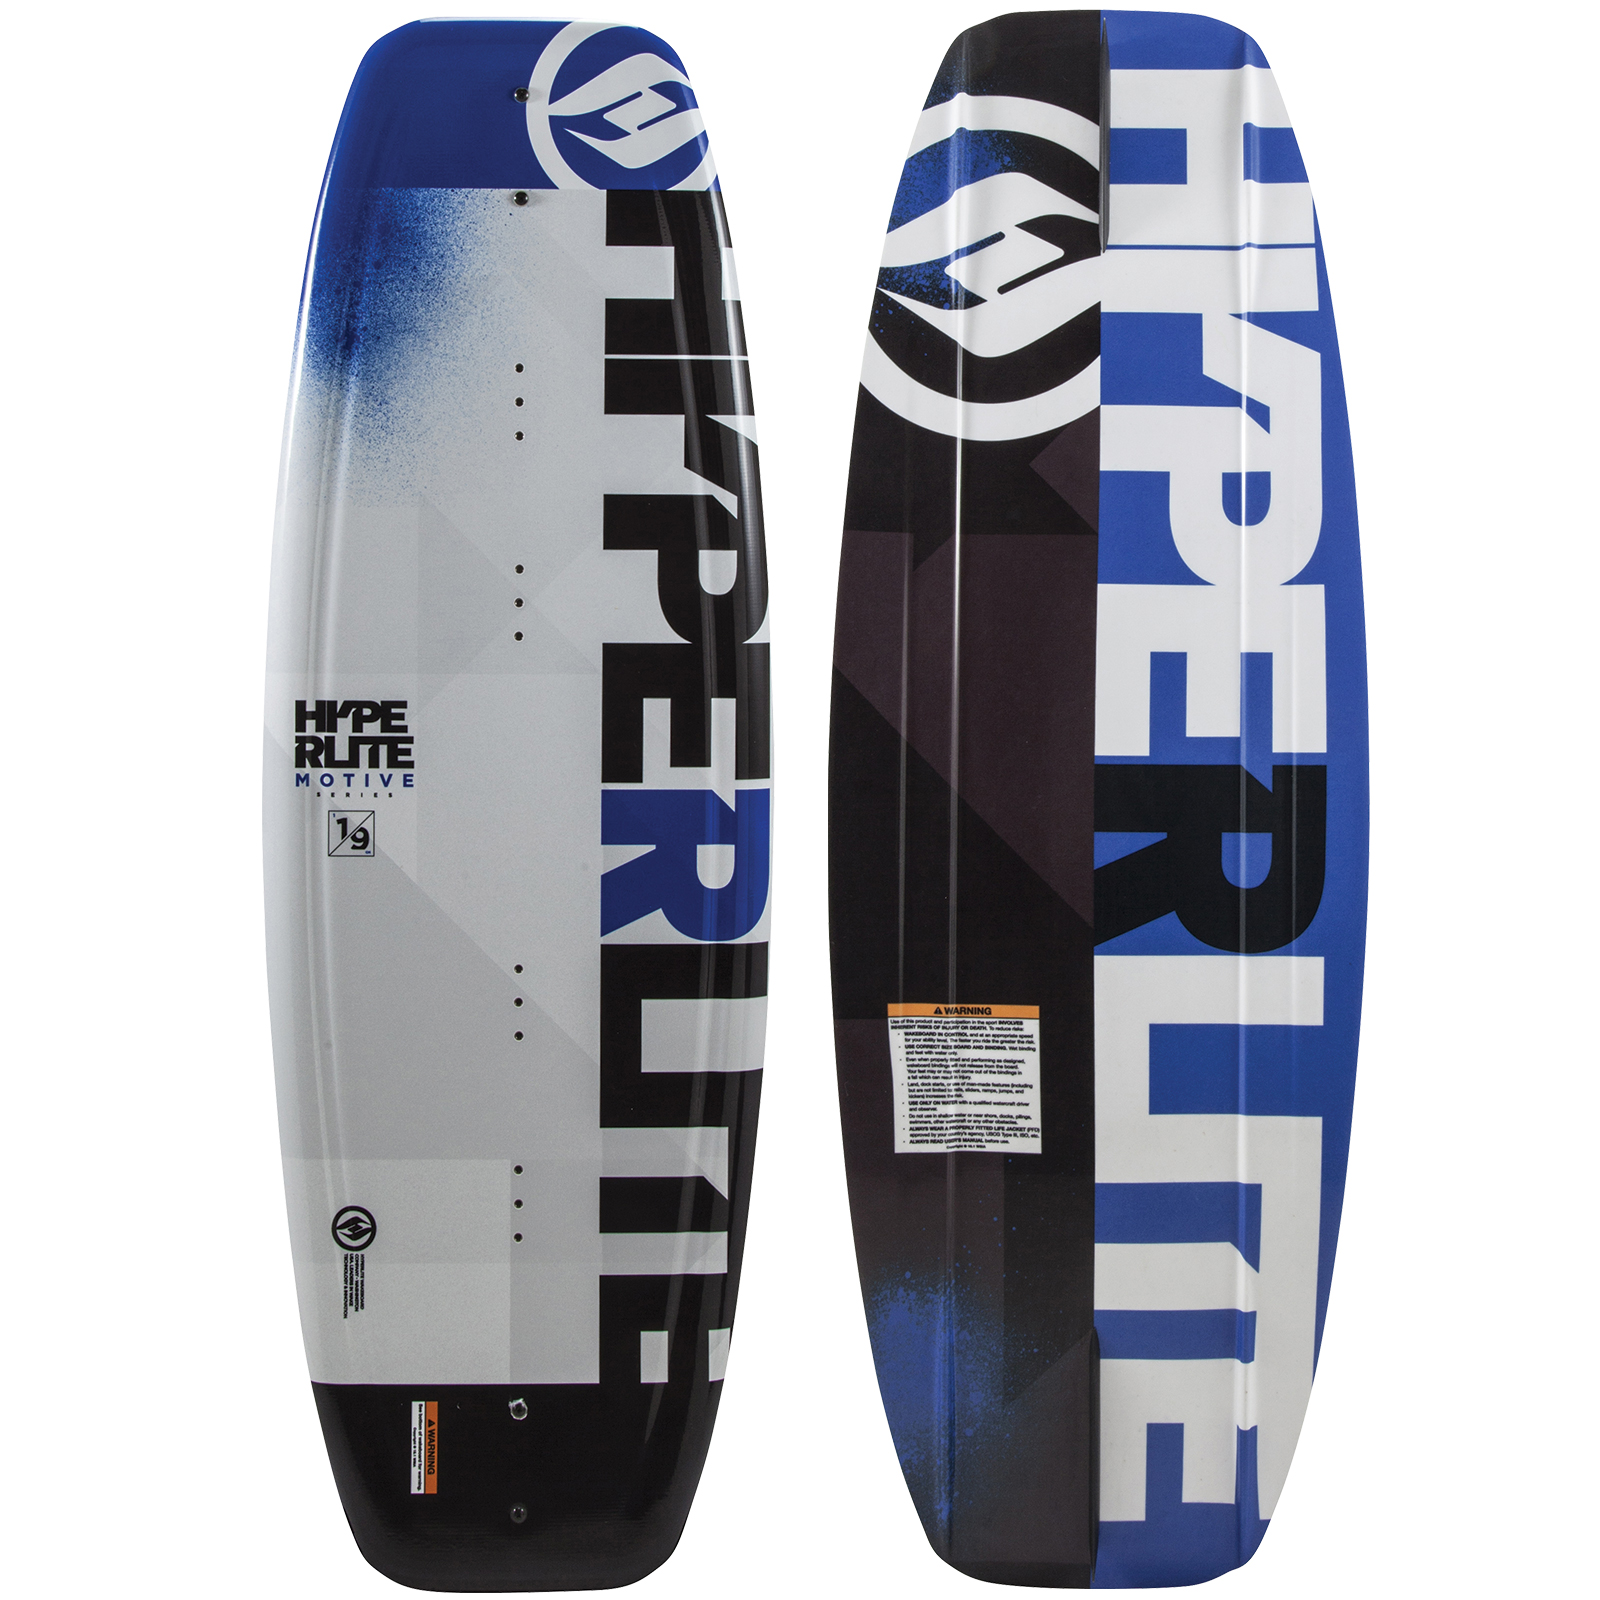 MOTIVE 119 JR. WAKEBOARD HYPERLITE 2018